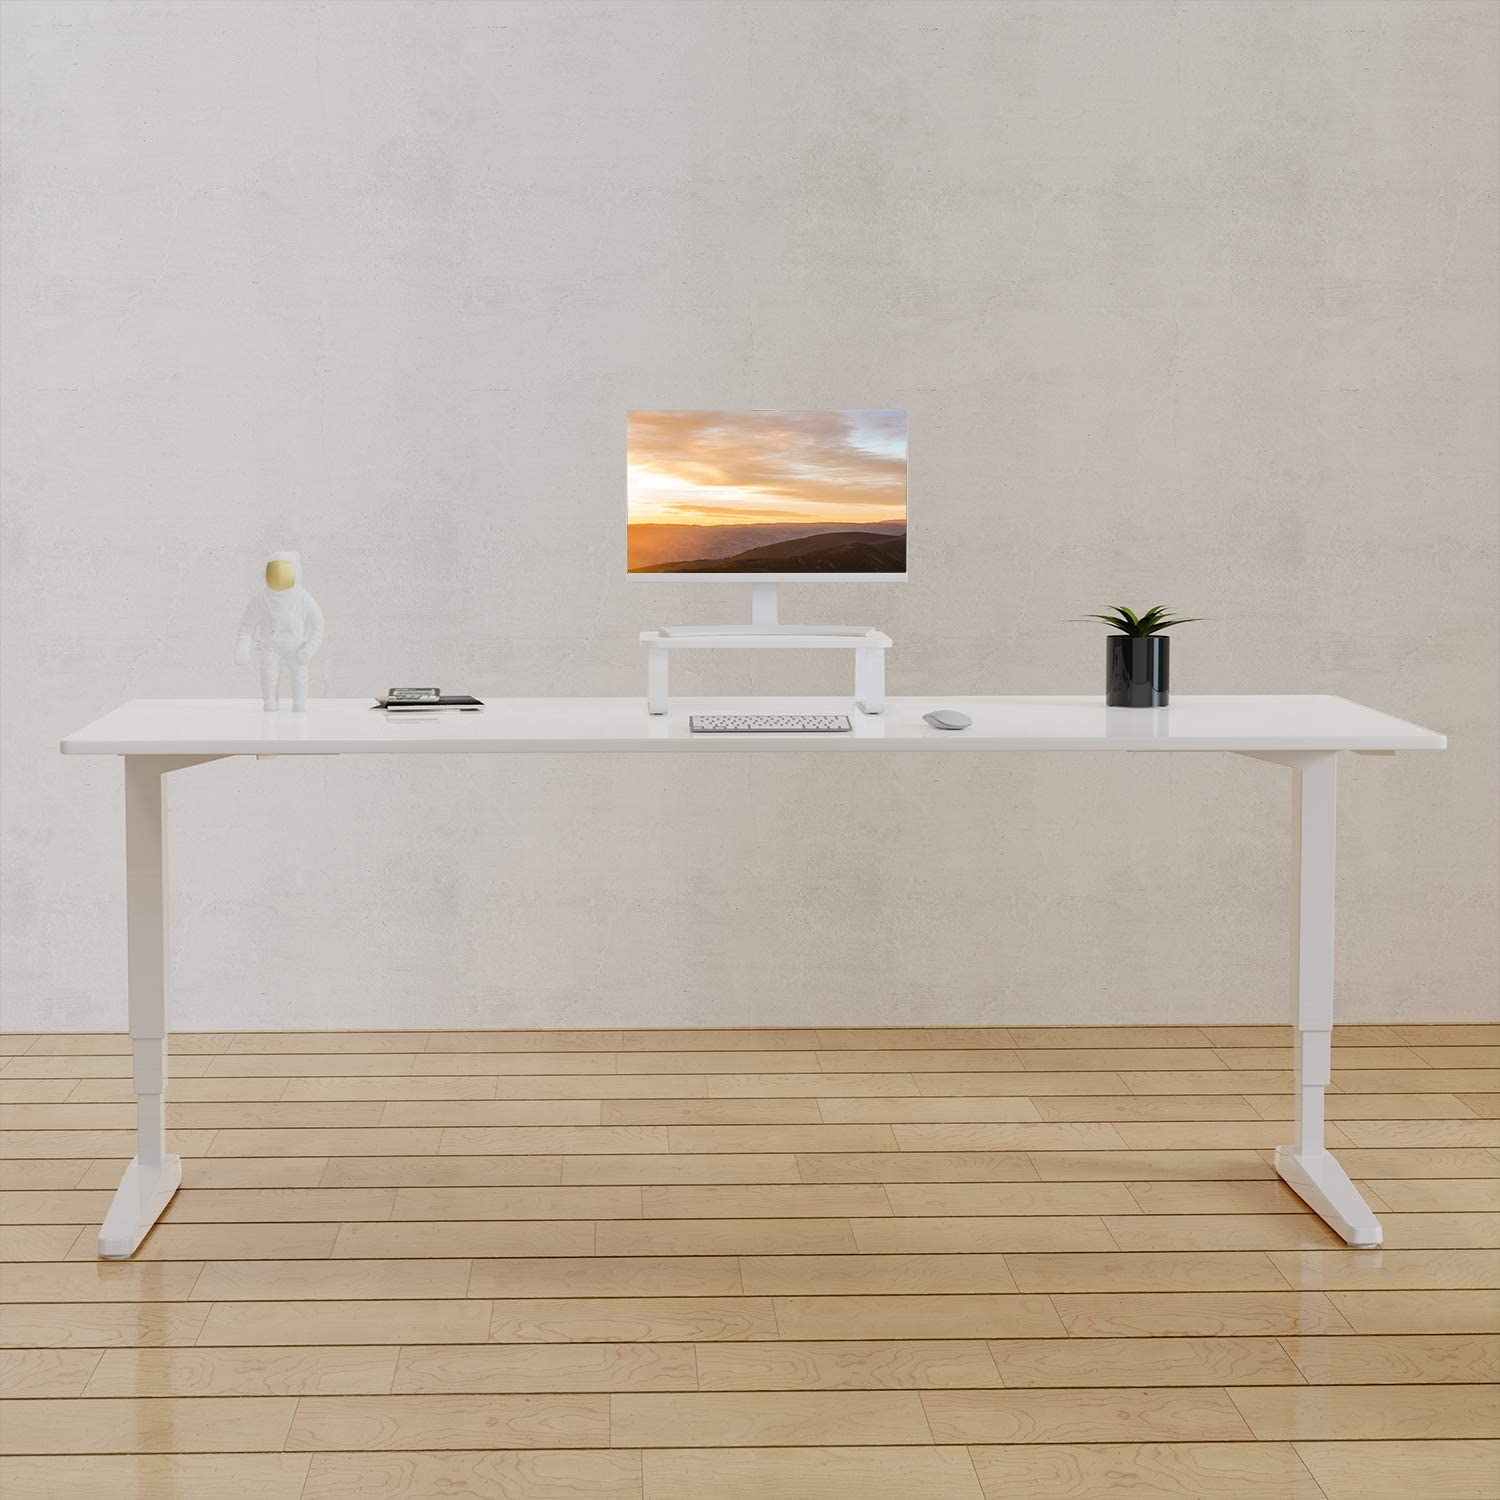 WALI Particle Board Monitor Stand Riser 16 Inch Ergonomic Desk Tabletop Organizer Rounded Edge Table Top for Flat Screen LCD LED Display, Laptop Notebook, Game Consoles (PTT004-W), White